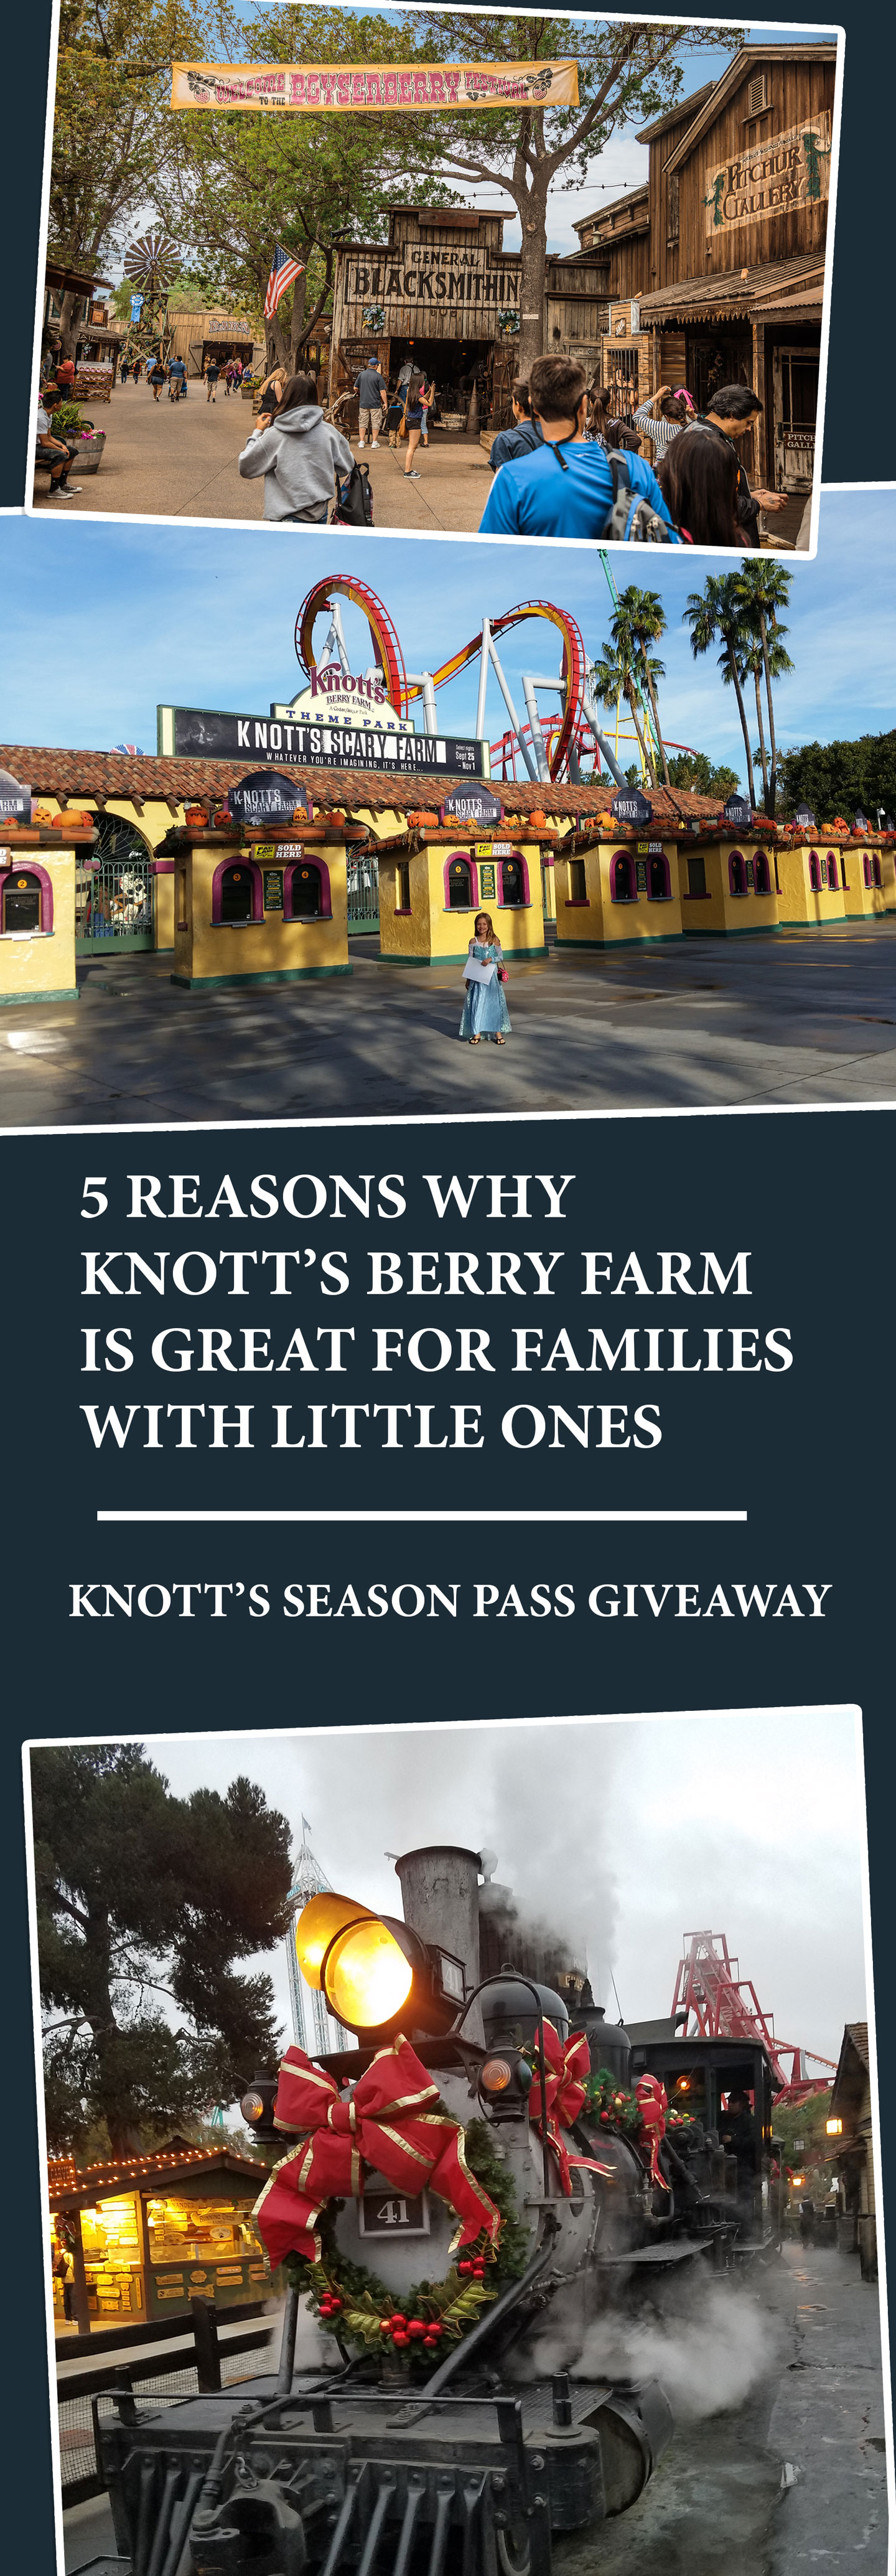 knotts berry farm giveaway